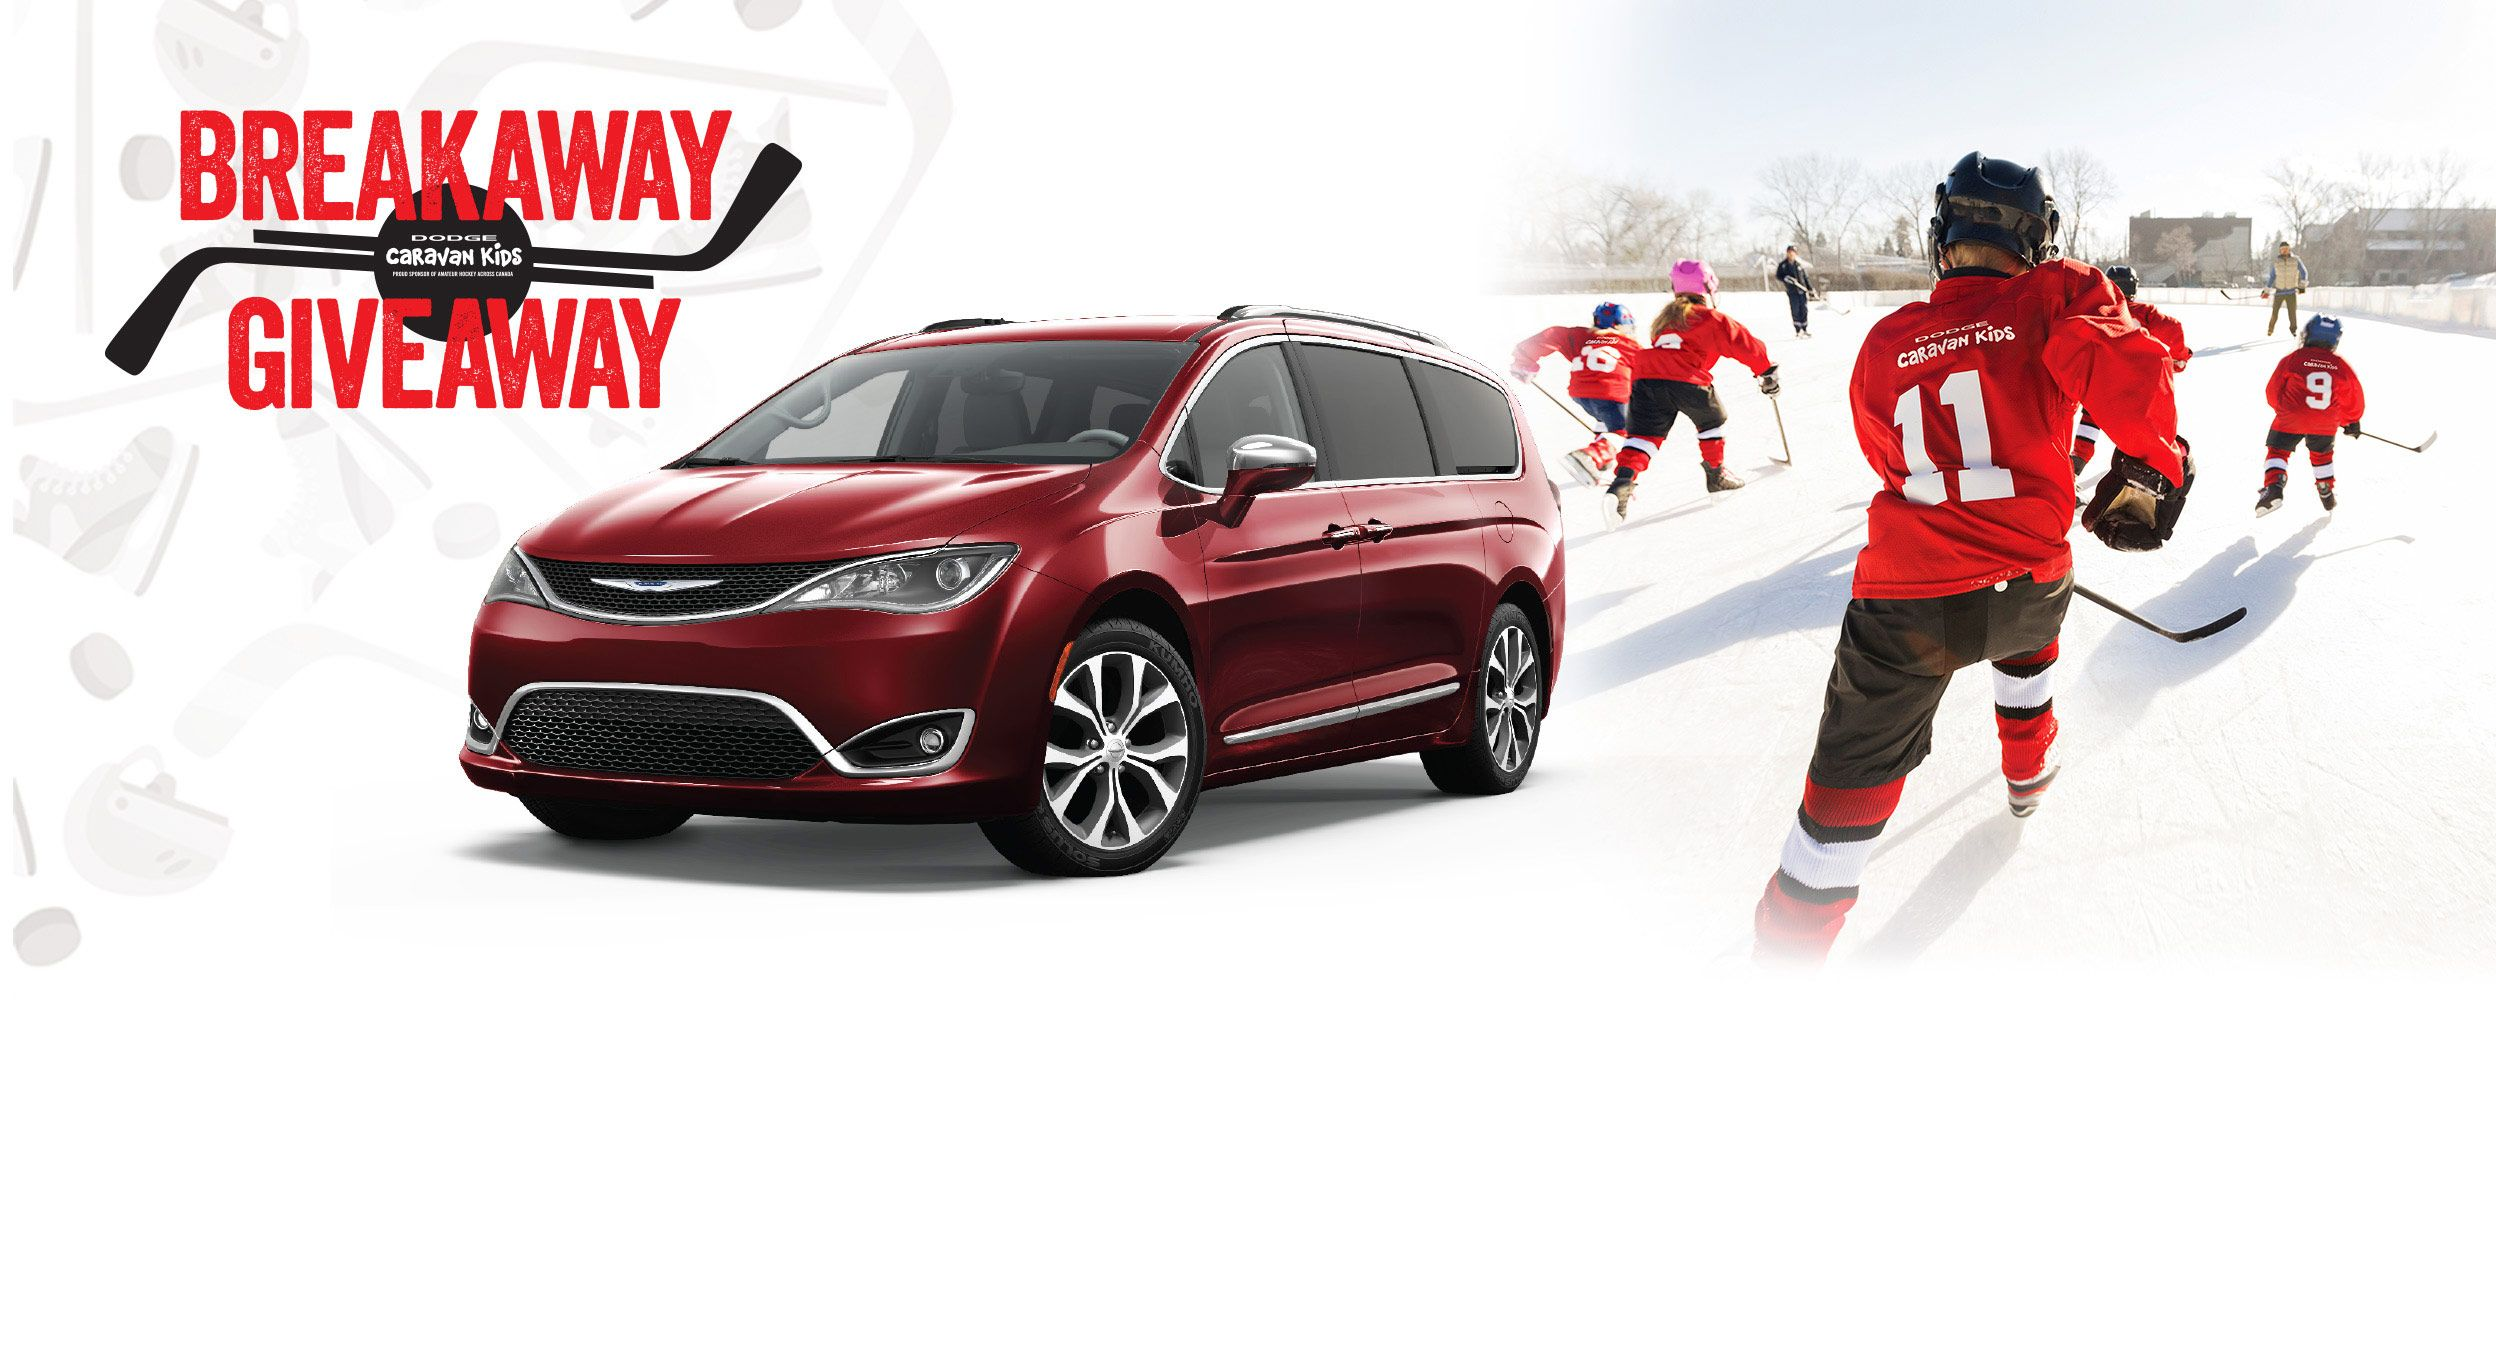 Win Dodge Grand Caravan Breakaway Giveaway Contest Enter Below For Your Chance To 5 000 Local Minor Hockey Ociation And A 2017 Chrysler